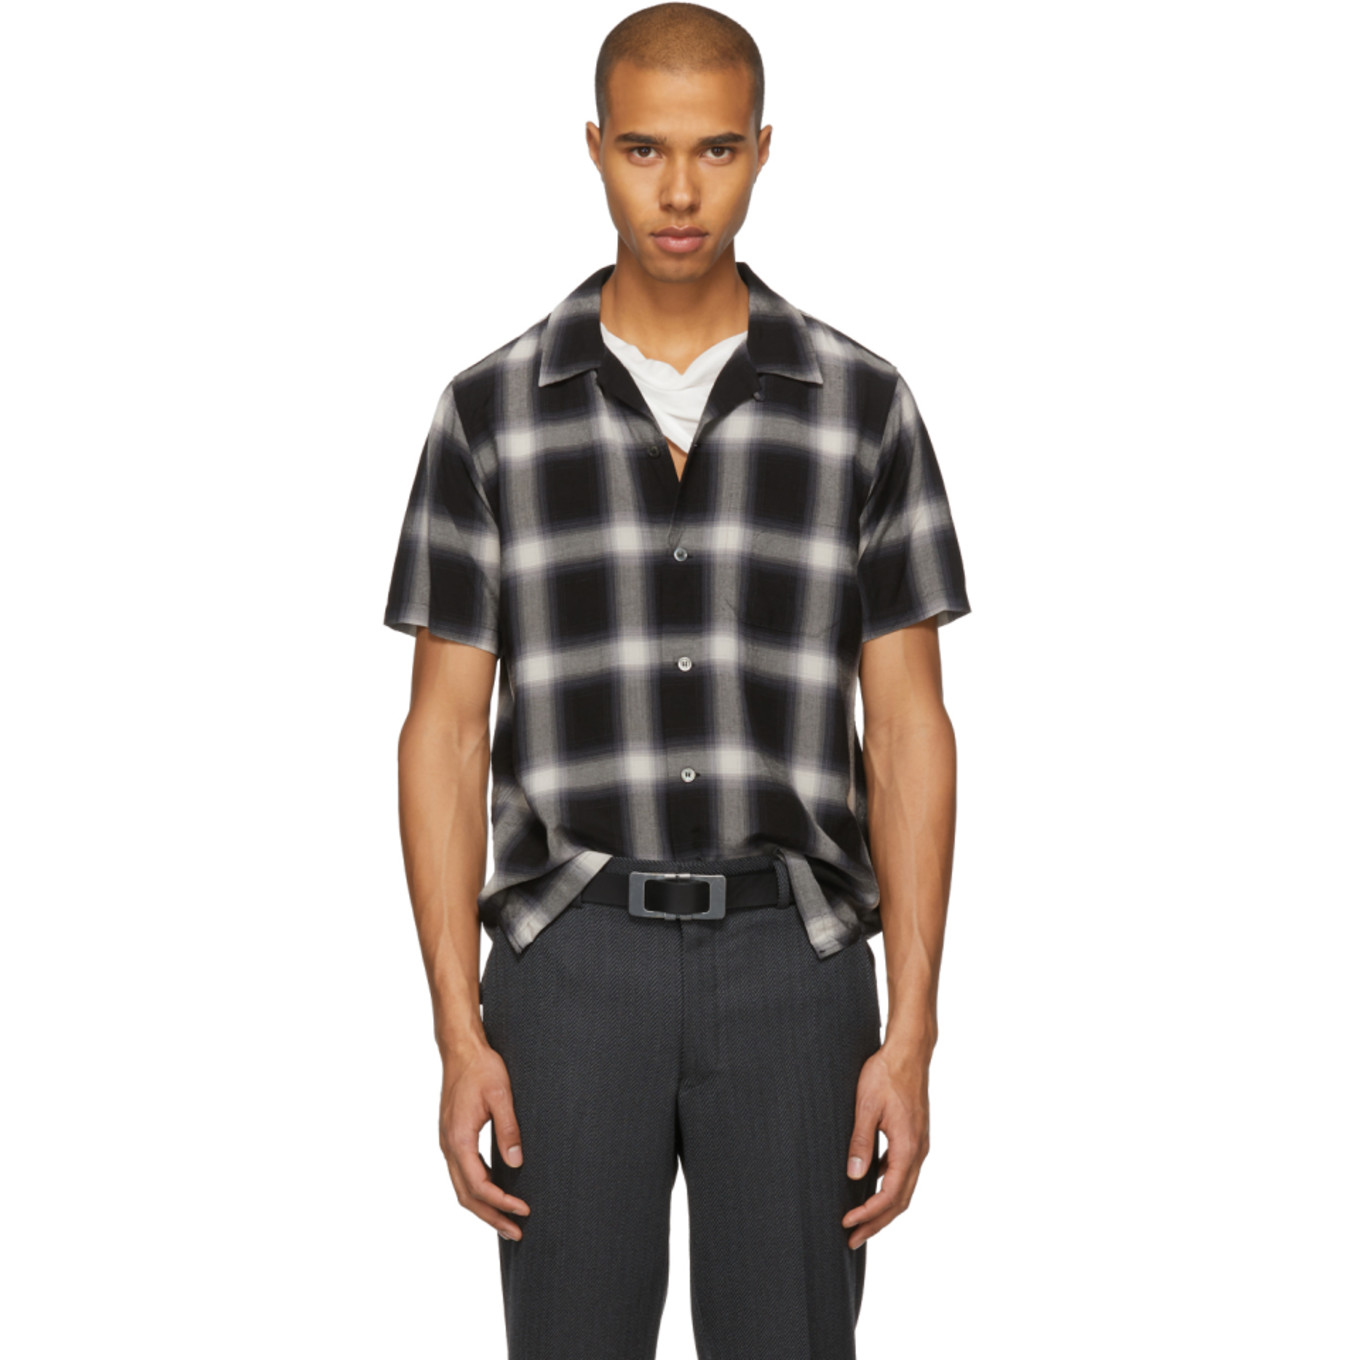 Black & White Short Sleeve Check Shirt by Attachment